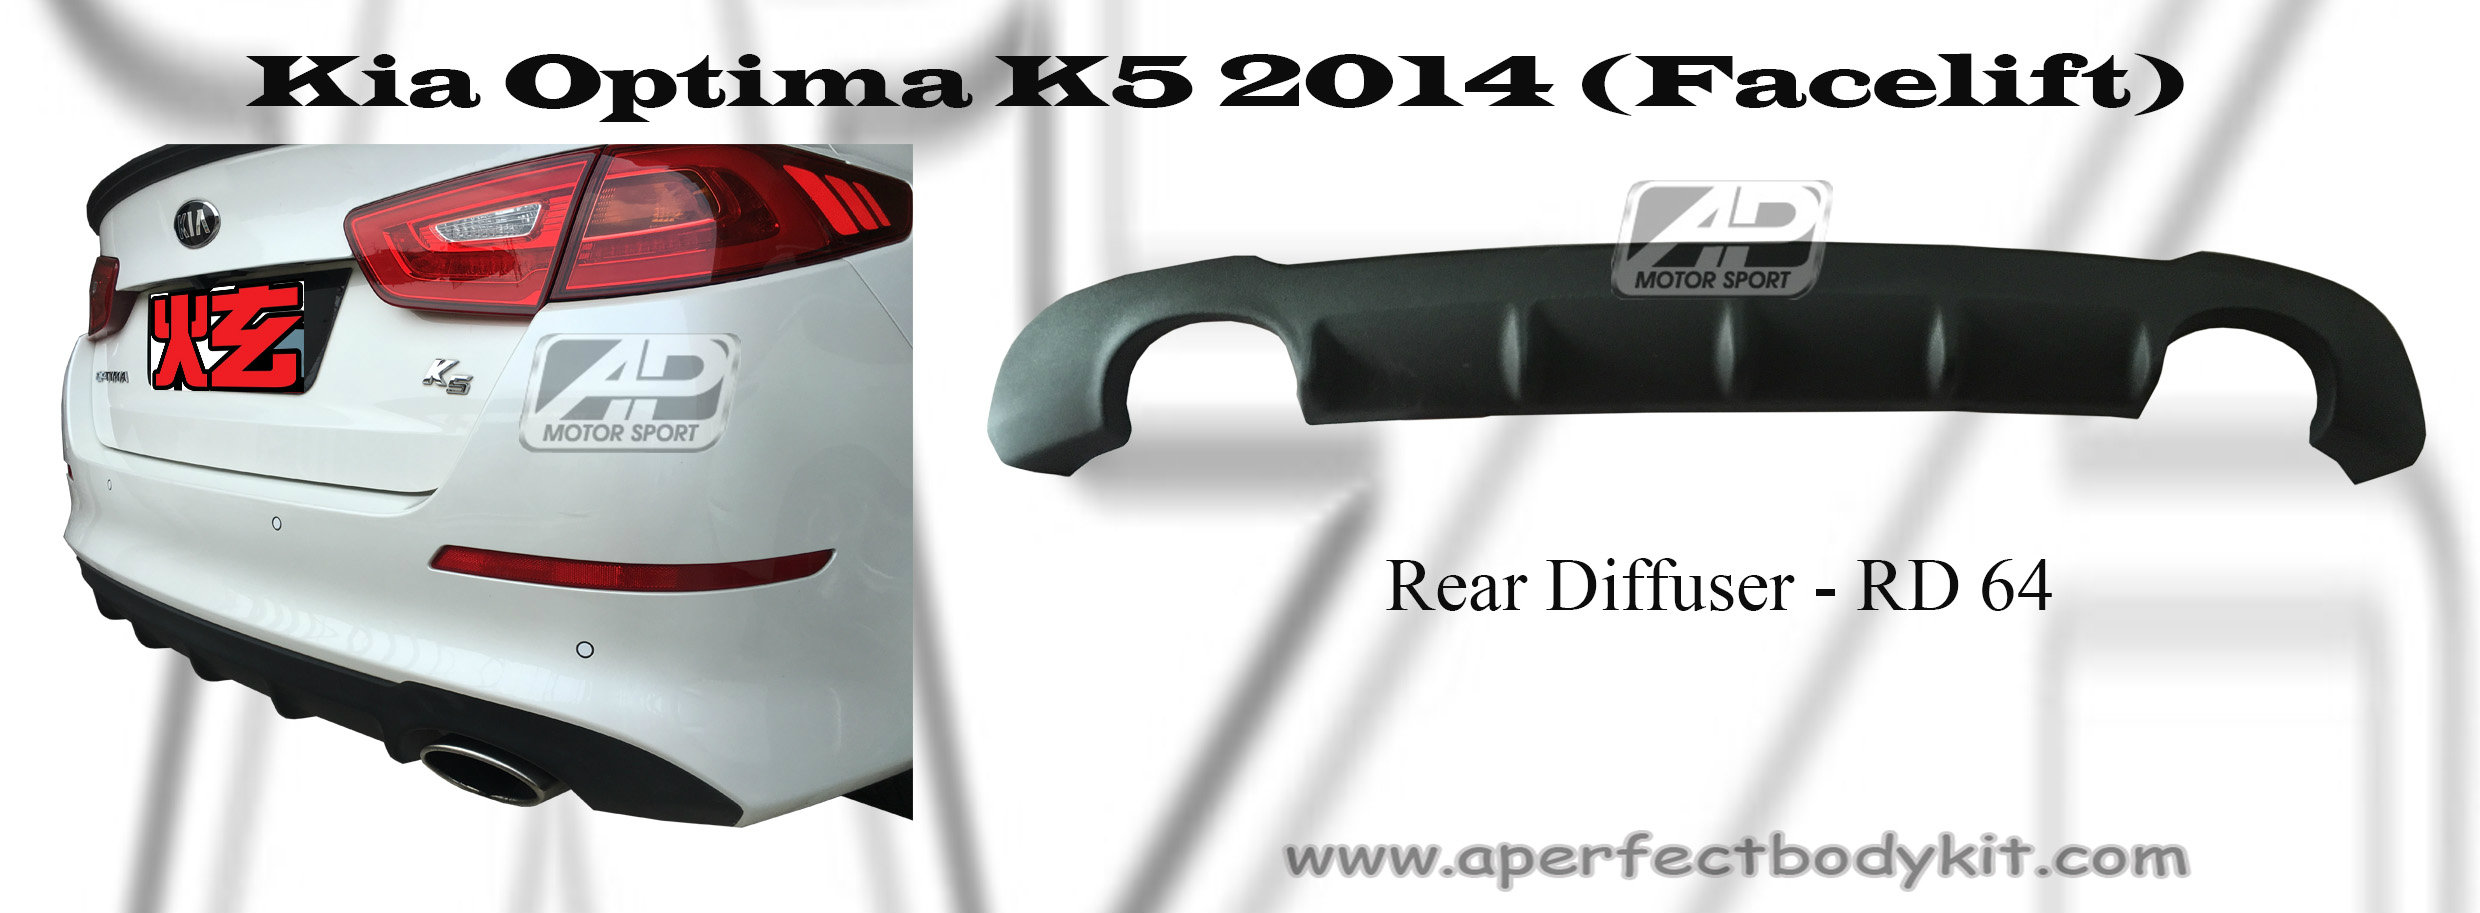 Kia K5 2014 Facelift Twin Exhaust Hole Diffuser